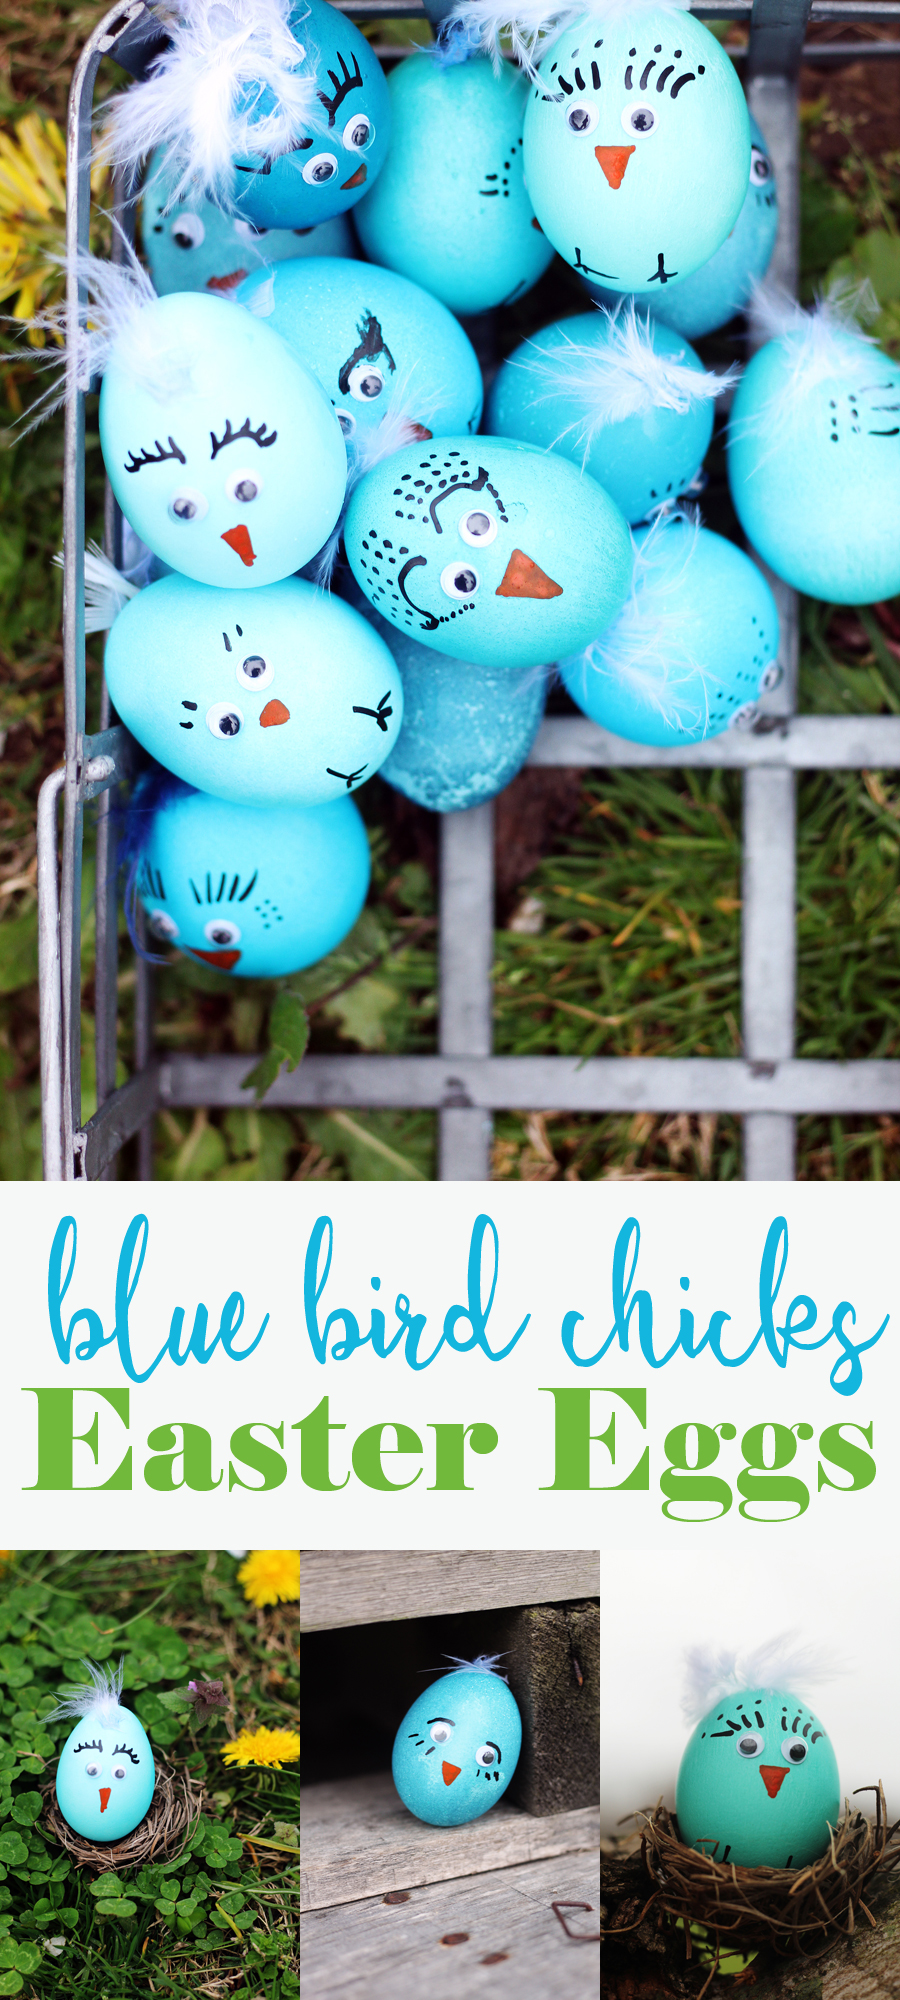 I am in LOVE with these adorable little Blue Bird Easter Egg Chicks. My daughter + I had so much fun decorating these eggs with googly eyes, feathers and more.